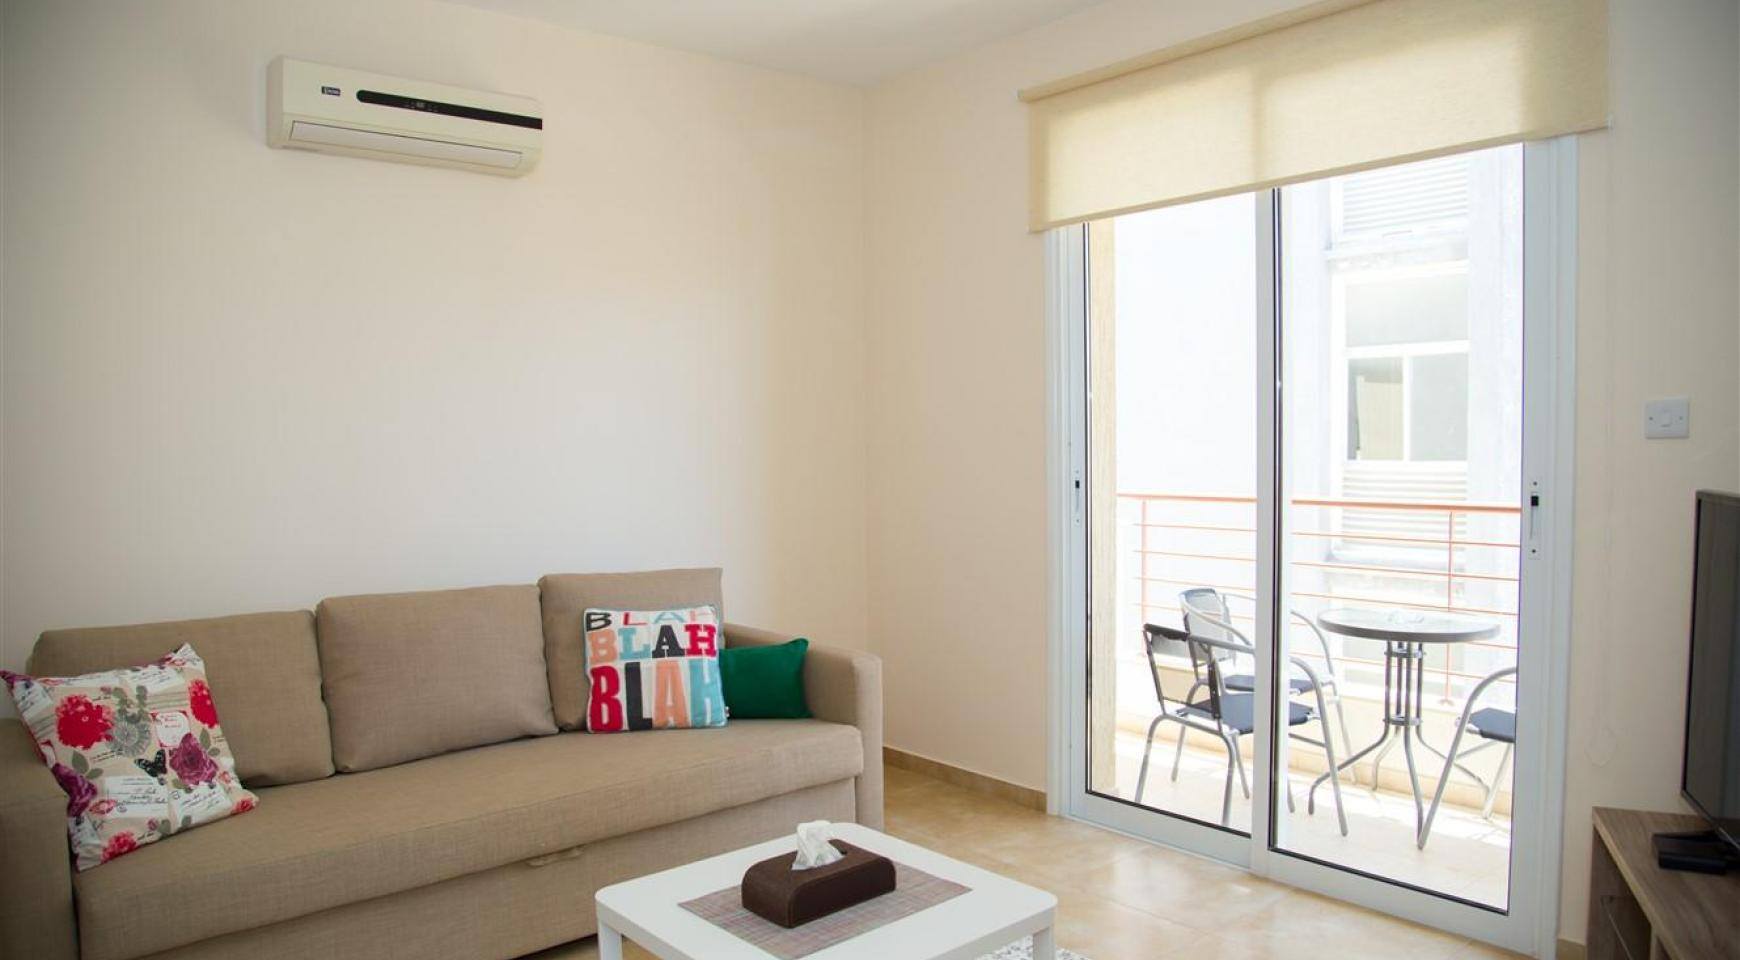 Luxury One Bedroom Apartment Frida 203 in the Tourist Area - 2